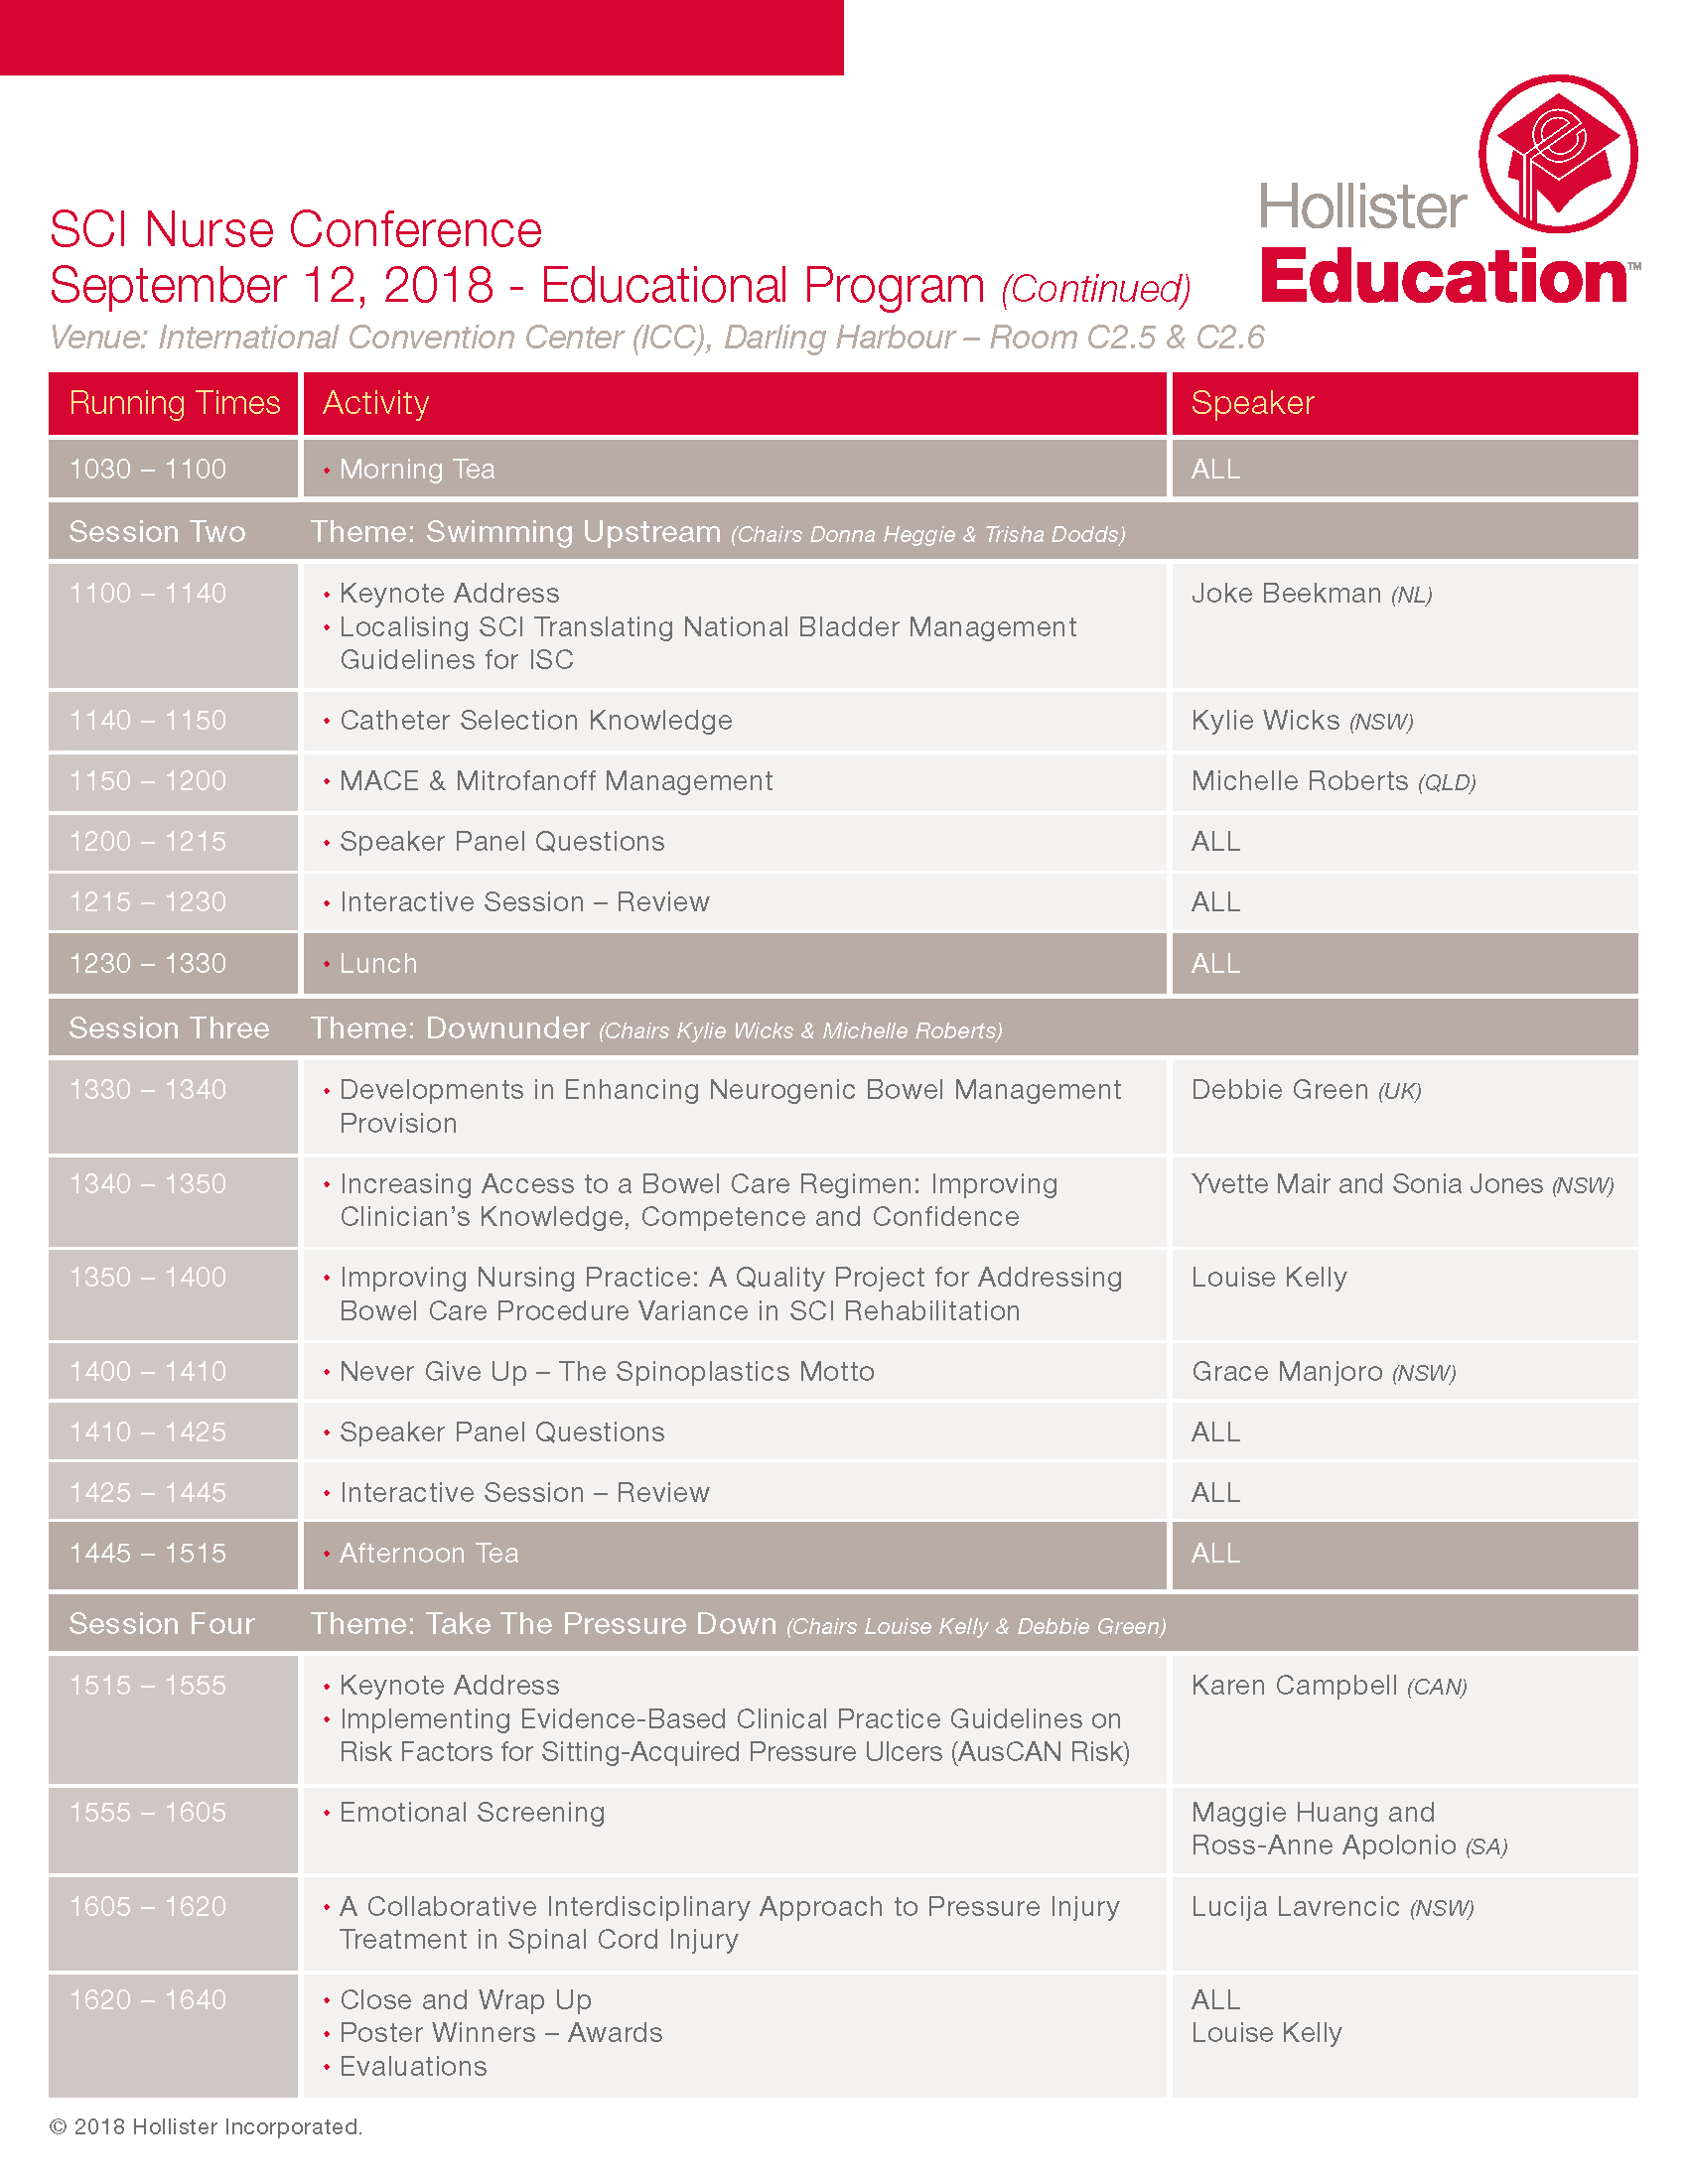 HOL Education Agenda SCIConference r9 Page 2